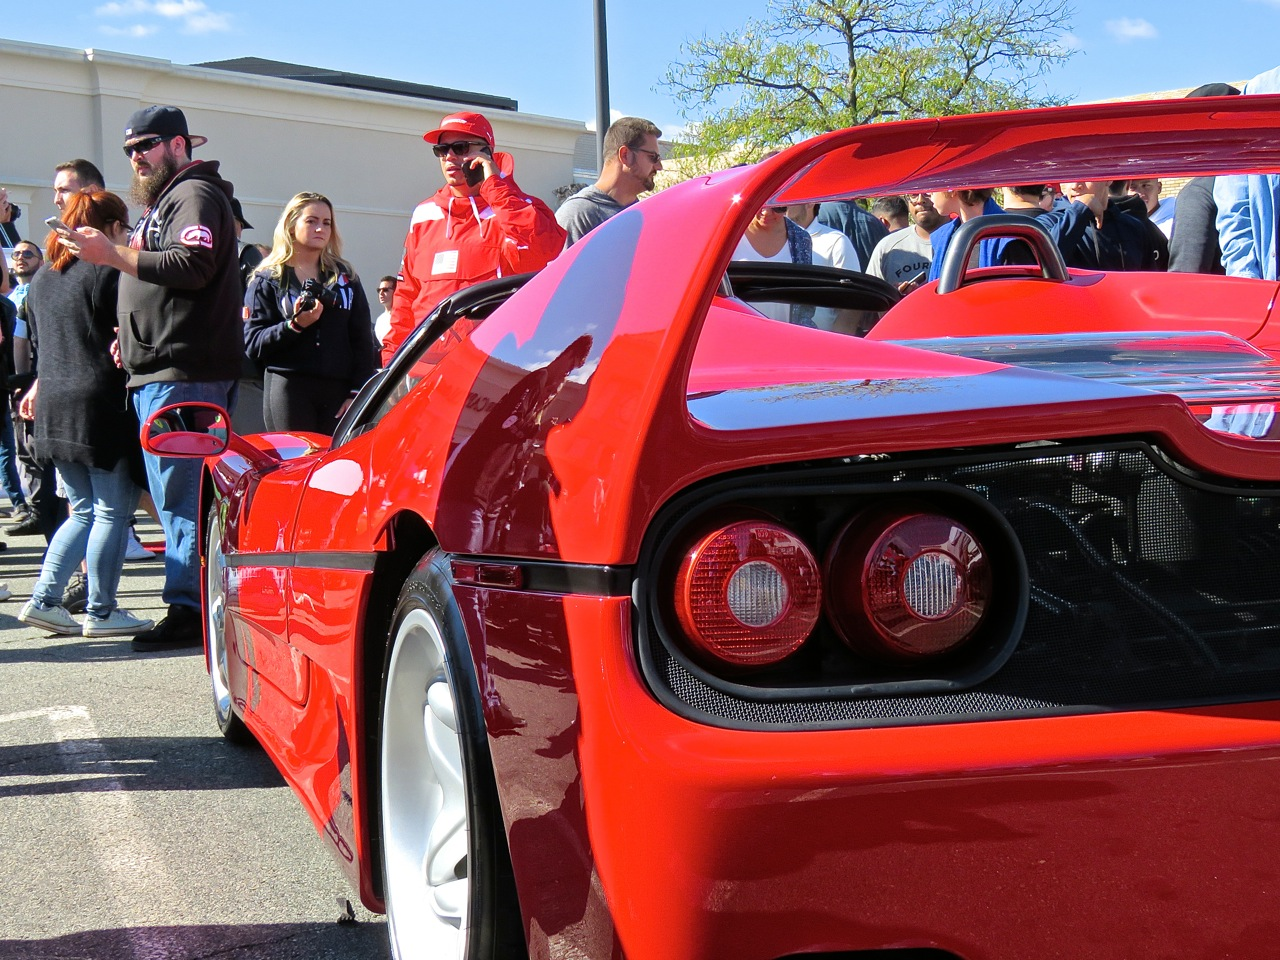 Ferrari F50 at Garden State Plaza